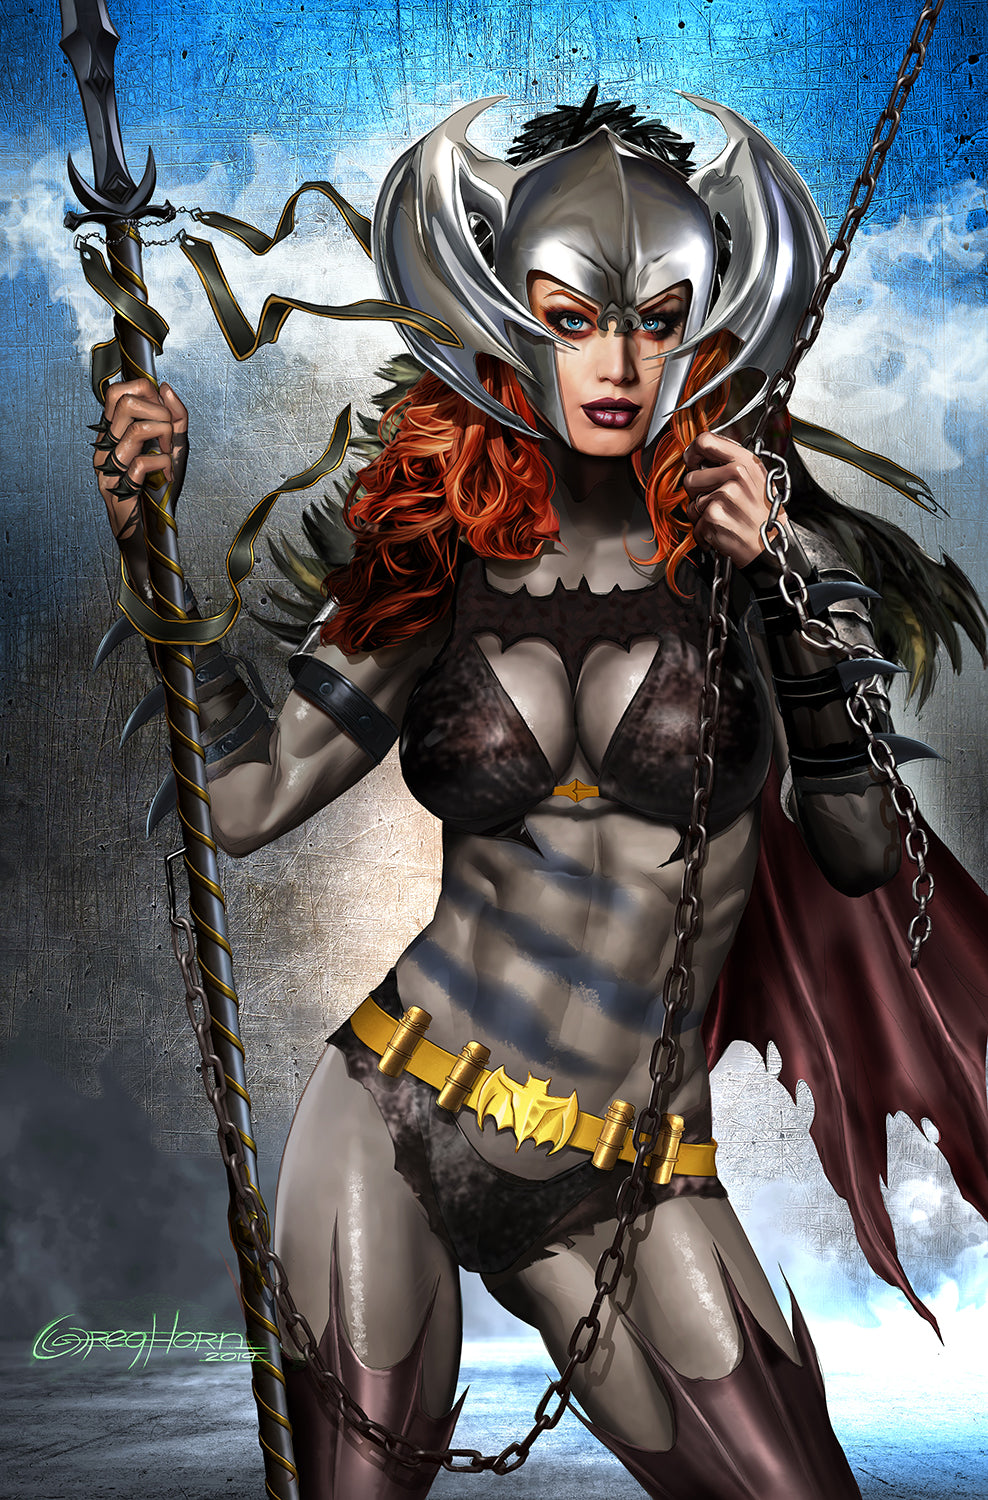 Batman/Superman - Metal Batgirl - High Quality 11 x 17